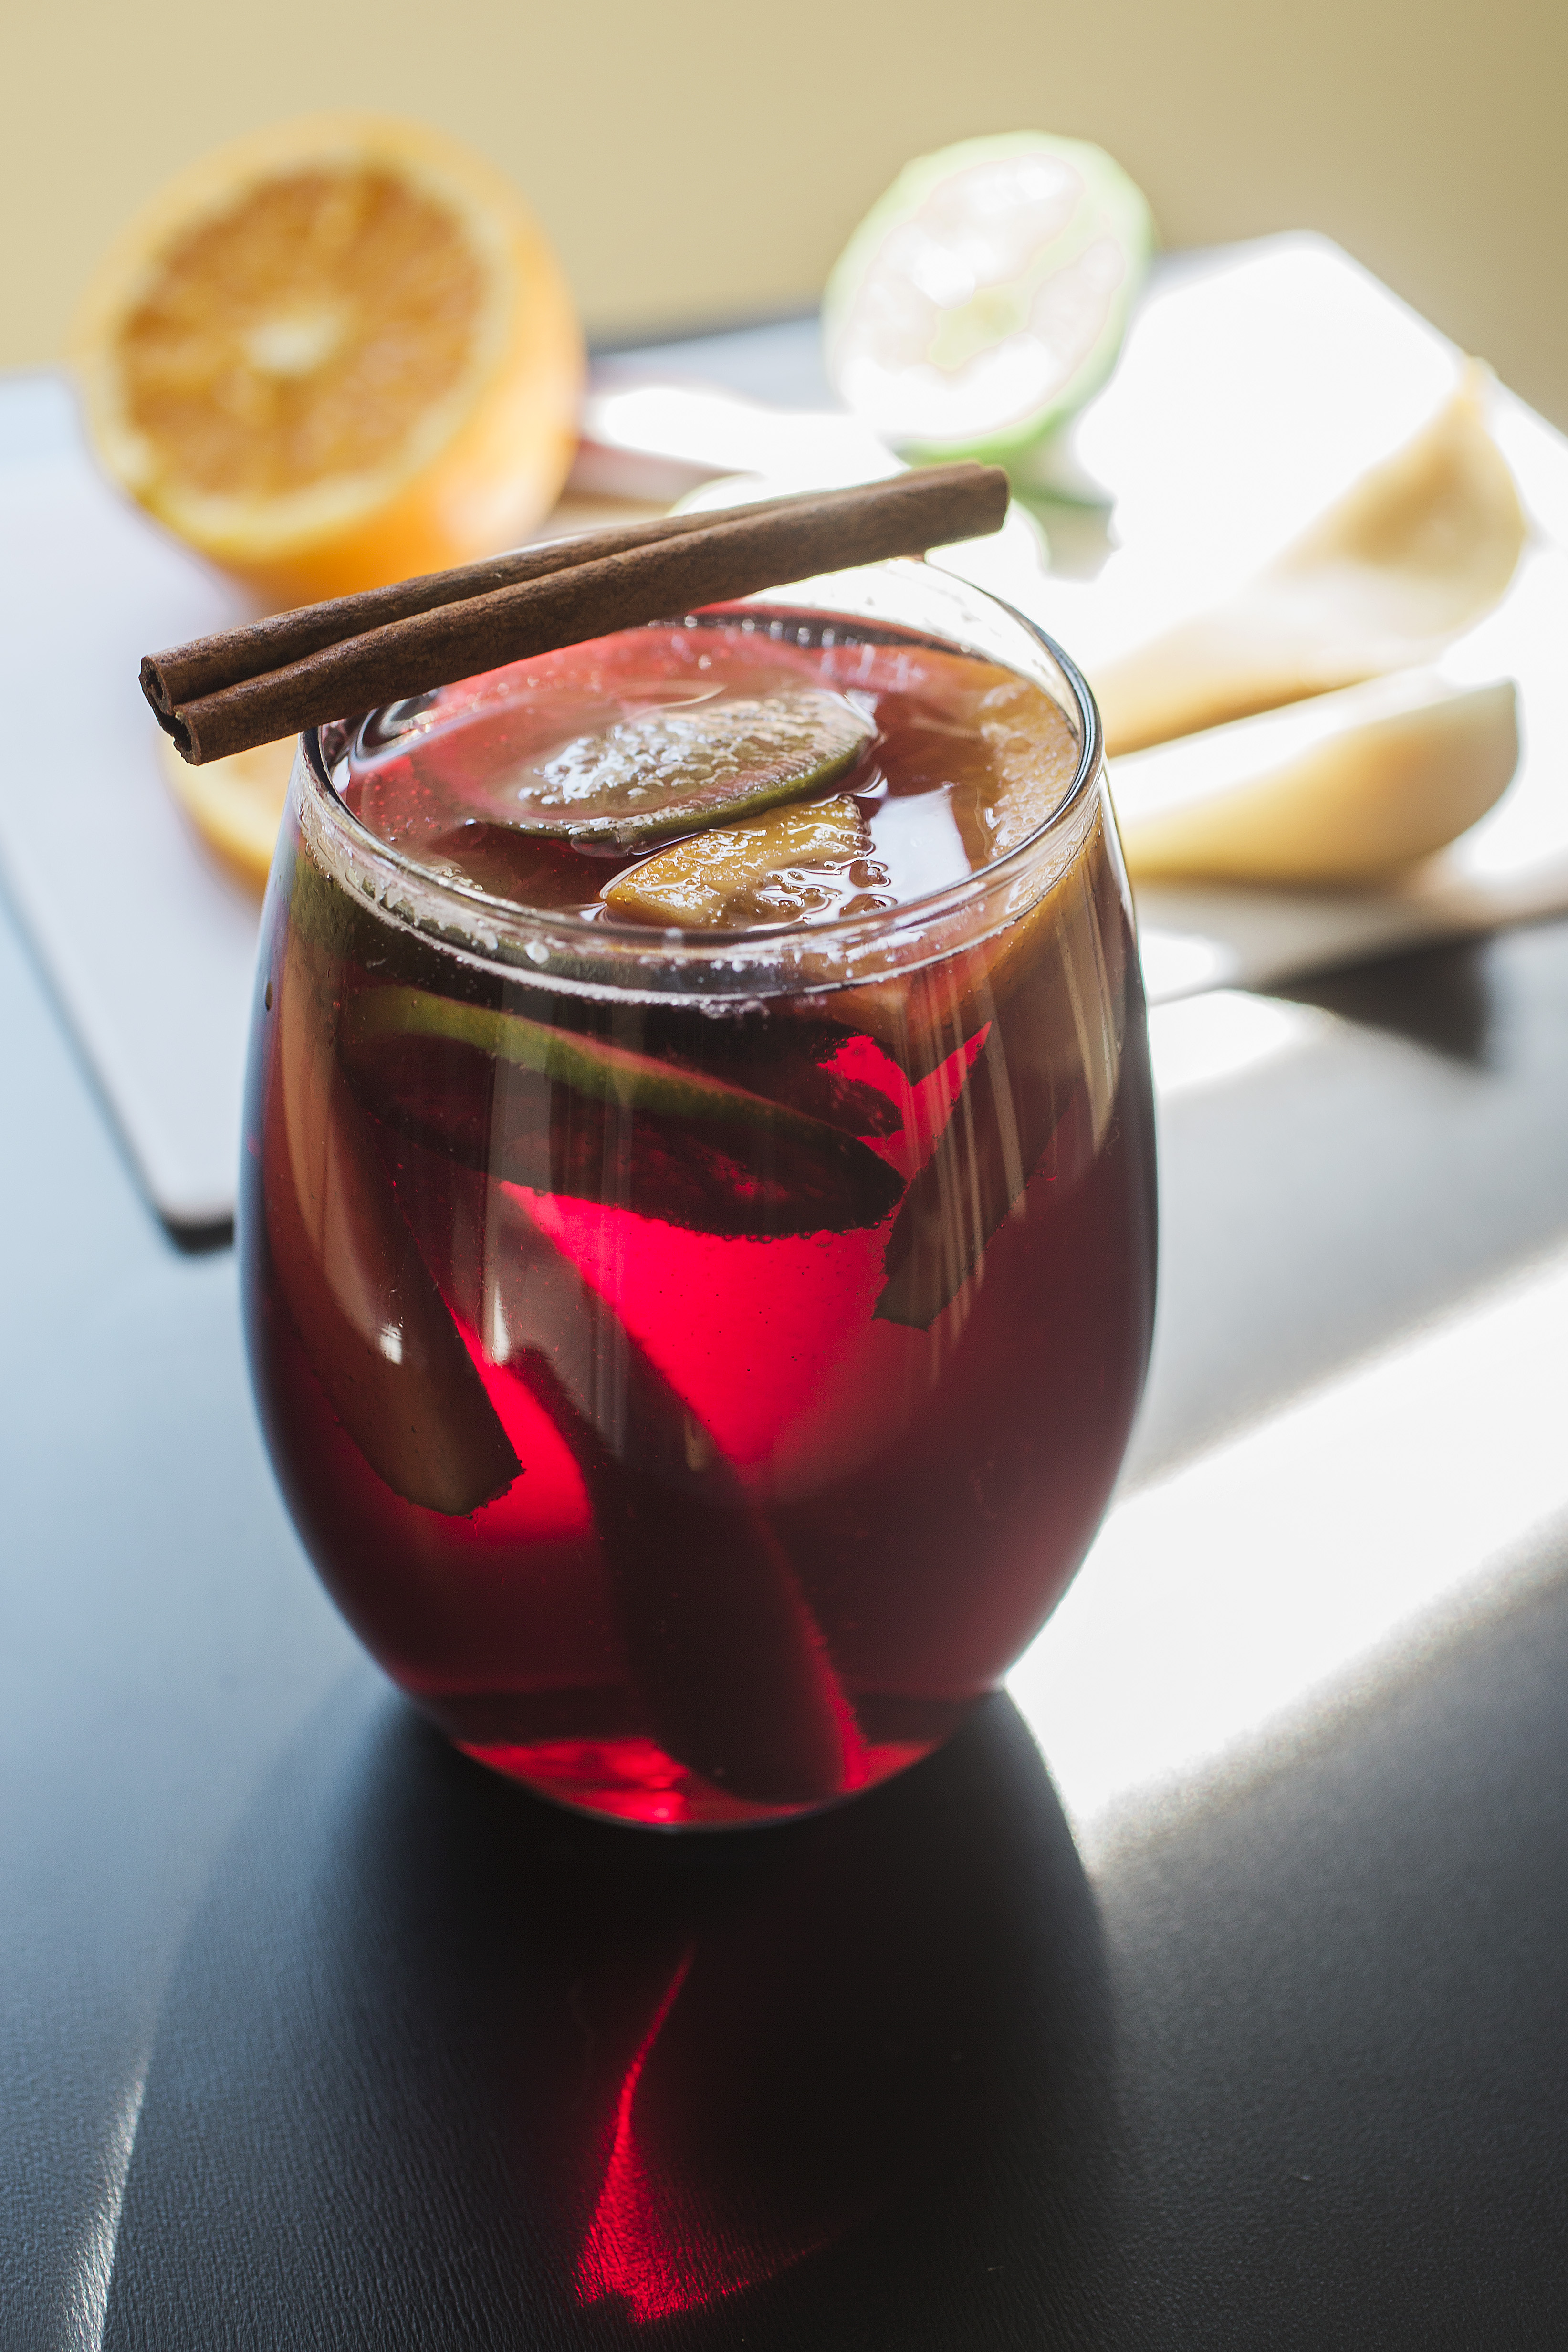 Ingredients: 1/2 cup Grand Marnier 1/4 cup Brandy 1 orange, halved and sliced 1 lime, sliced 1 pear, sliced 3 cinnamon sticks 1 bottle dry red wine 3/4 cup ginger ale Directions: Add first 7 ingredients to a large pitcher and stir well. Refrigerate for at least 2 hours. Right before serving, add ginger ale and enjoy.